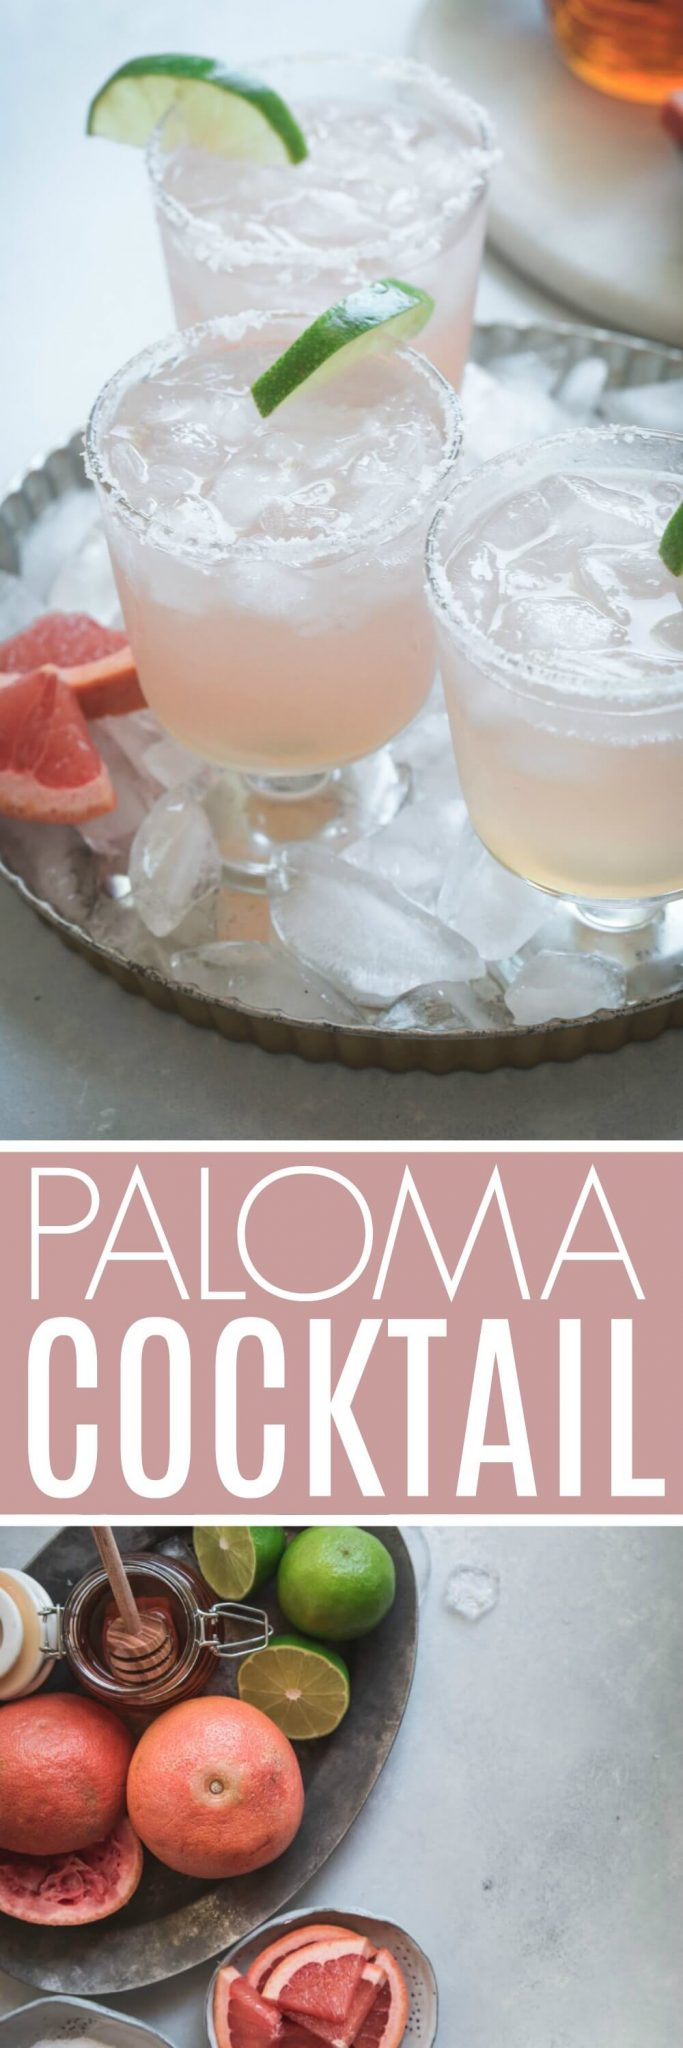 This Paloma Cocktail with Honey Simple Syrup is a refreshing, citrus cocktail made with tequilla and a splash of soda water. Serve it on the rocks with a salted rim and enjoy! #cocktail #tequila #paloma #palomacocktail #pinkcocktail #mexicancocktail